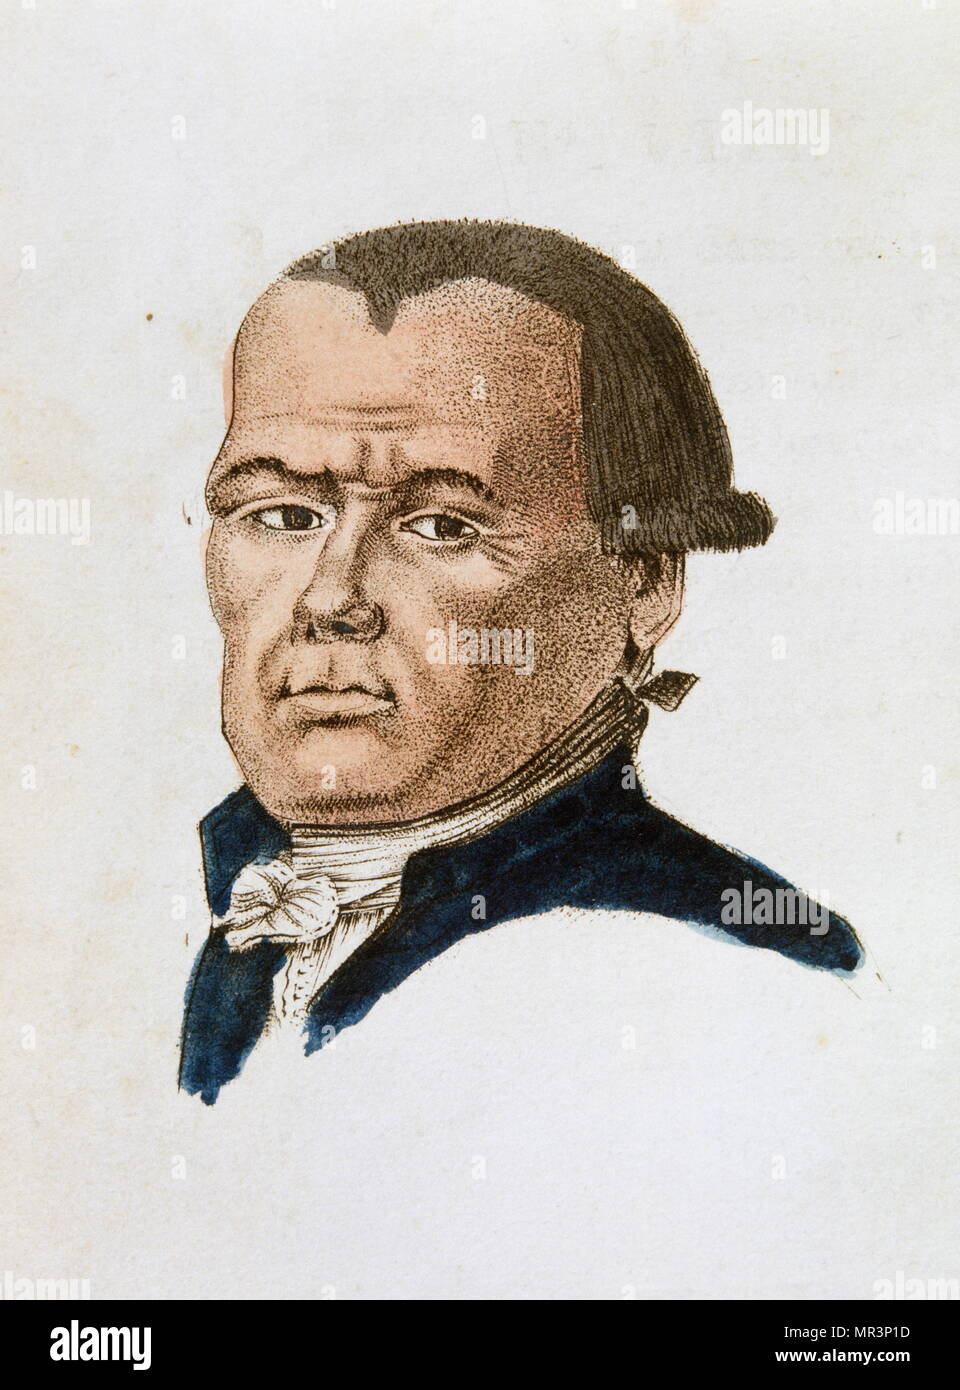 Illustration of a man from 'The Portable Lavater or precise the art of knowing men by the facial features' 1808 by Johann Kaspar Lavater (1741 – 1801). Lavater was a Swiss poet, writer, philosopher, physiognomist and theologian. Lavater is most known for his work in the field of physiognomy. He introduced the idea that physiognomy related to the specific character traits of individuals, rather than general types. - Stock Image